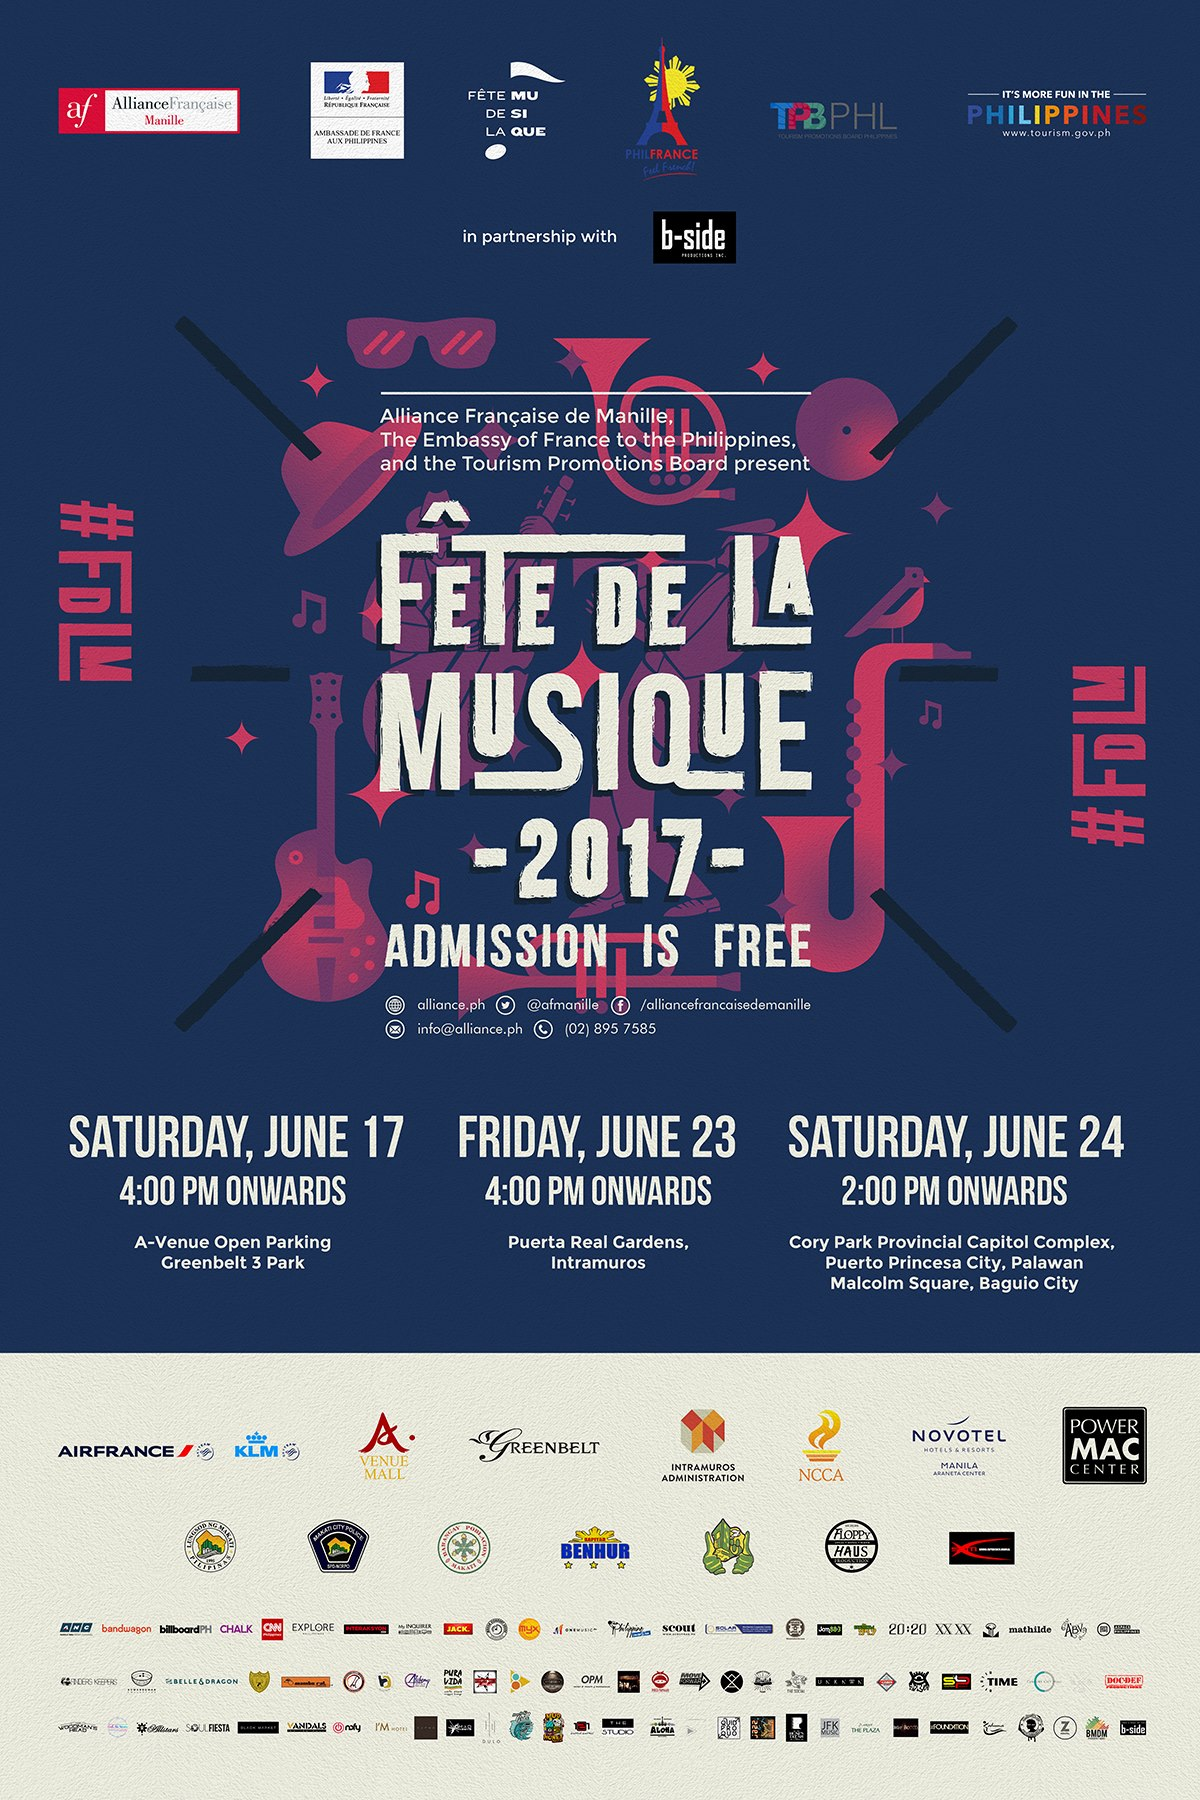 Fête de la Musique Greenbelt Main Stage (Official event page) Public · Hosted by Alliance française de Manille clock Saturday, June 17 at 4 PM - 1 AM Jun 17 at 4 PM to Jun 18 at 1 AM pin Show Map Greenbelt 3 Arnaiz Ave, Makati Fête de la Musique will once again be staging one of its Makati stages at the Greenbelt 3 Park on June 17, 2017 from 4:00 pm onwards. We have prepared a great line-up for you consisting of great and sought-after Filipino musicians performing different genres of music: 4:00 - 4:45 PM Ourselves the Elves Garage (Folk / Alt Country) 4:45 - 5:30 PM Oh, Flamingo (Indie Rock) 5:30 - 6:15 PM Brat Pack (Rock & Roll / Blues) 6:15 - 7:00 PM Toni B. Quirky (Pop / Jazz / Swing) 7:00 - 7:45 PM Tandems '91 (Electronic Music) 7:45 - 8:30 PM Taken By Cars (Indie Rock) 8:30 - 9:15 PM Chocolate Grass (Soul / Jazz) 9:15 - 10:00 PM Kat Agarrado (Funk / Soul / Jazz) 10:00 - 11:00 PM BP Valenzuela (Ambient / Electronic Pop) 11:00 - 11:45 PM Tarsius (Electronica) ADMISSION FOR FETE DE LA MUSIQUE IS FREE! The 23rd Edition of Fête de la Musique is brought to you by the Alliance Française de Manille, Embassy of France to the Philippines, Tourism Promotions Board with B-Side Productions. --- Alliance française de Manille added 6 new photos. June 2 at 6:14pm · Presenting the main stages and over 30 pocket stages of the 23rd Edition of Fête de la Musique in the Philippines